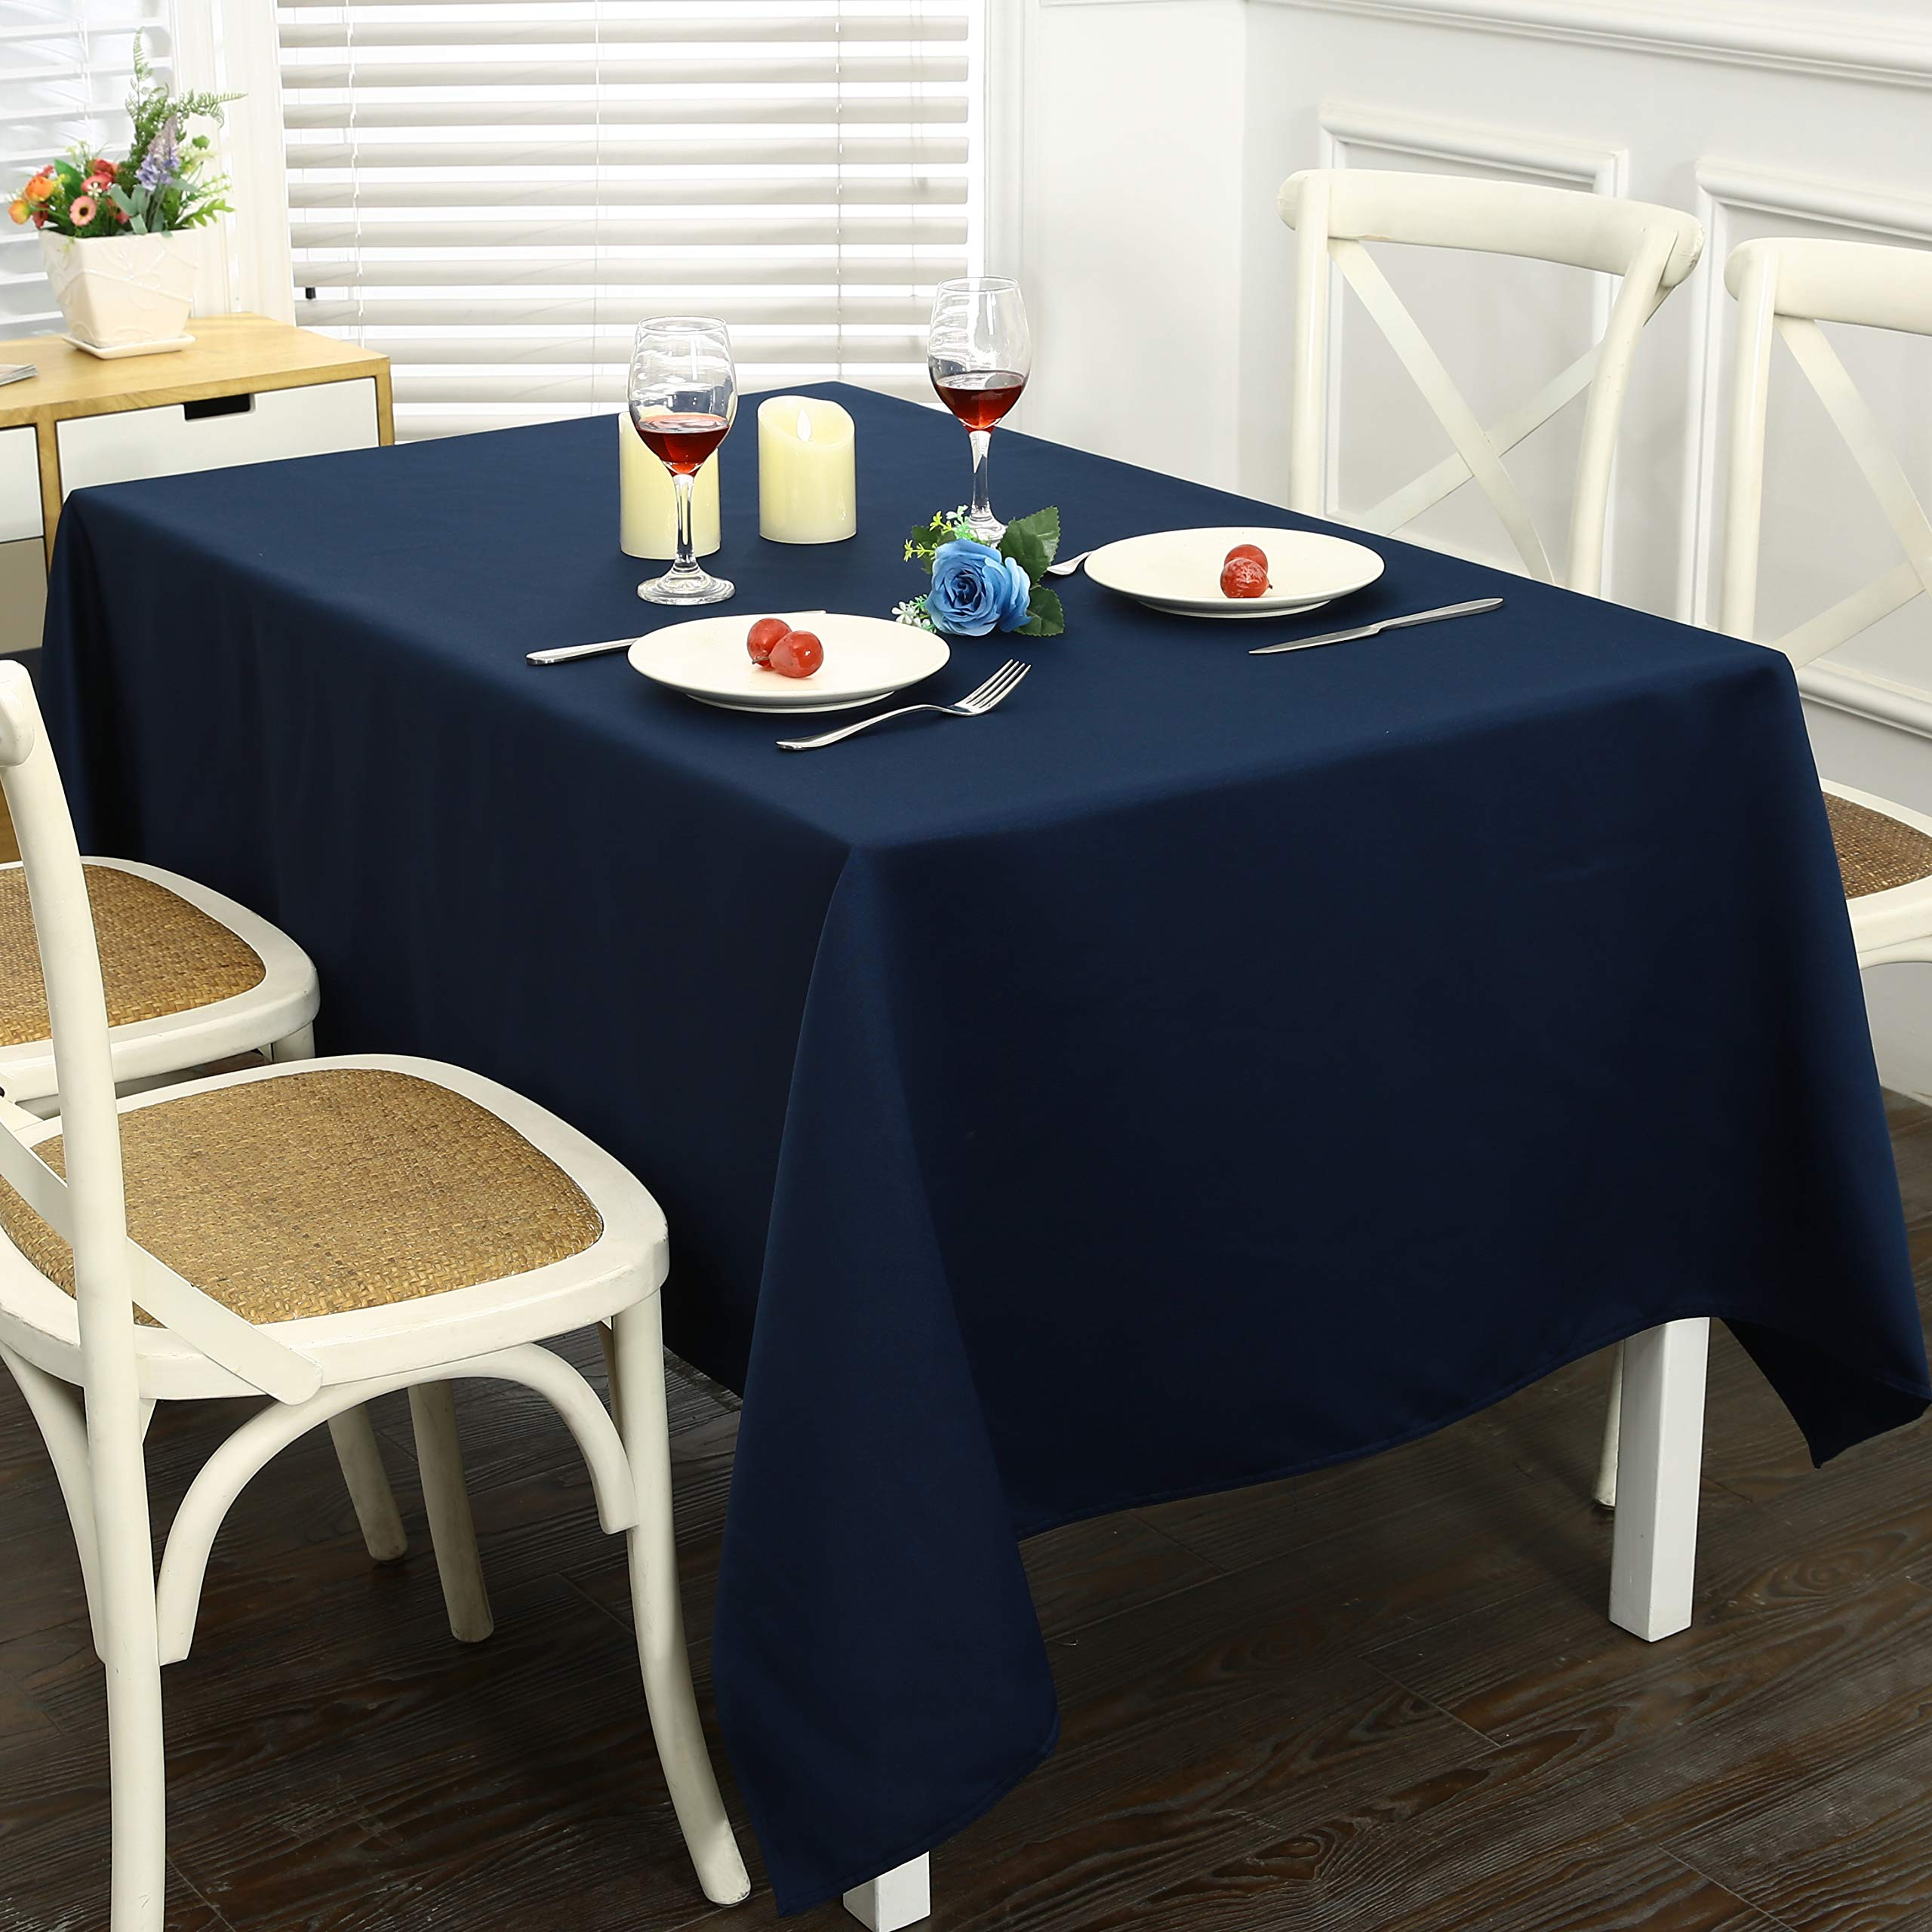 Obstal Rectangle Table Cloth, Oil-Proof Spill-Proof and Water Resistance Microfiber Tablecloth, Decorative Fabric Table Cover for Outdoor and Indoor Use (Navy Blue, 60 x 84 Inch) by Obstal (Image #8)